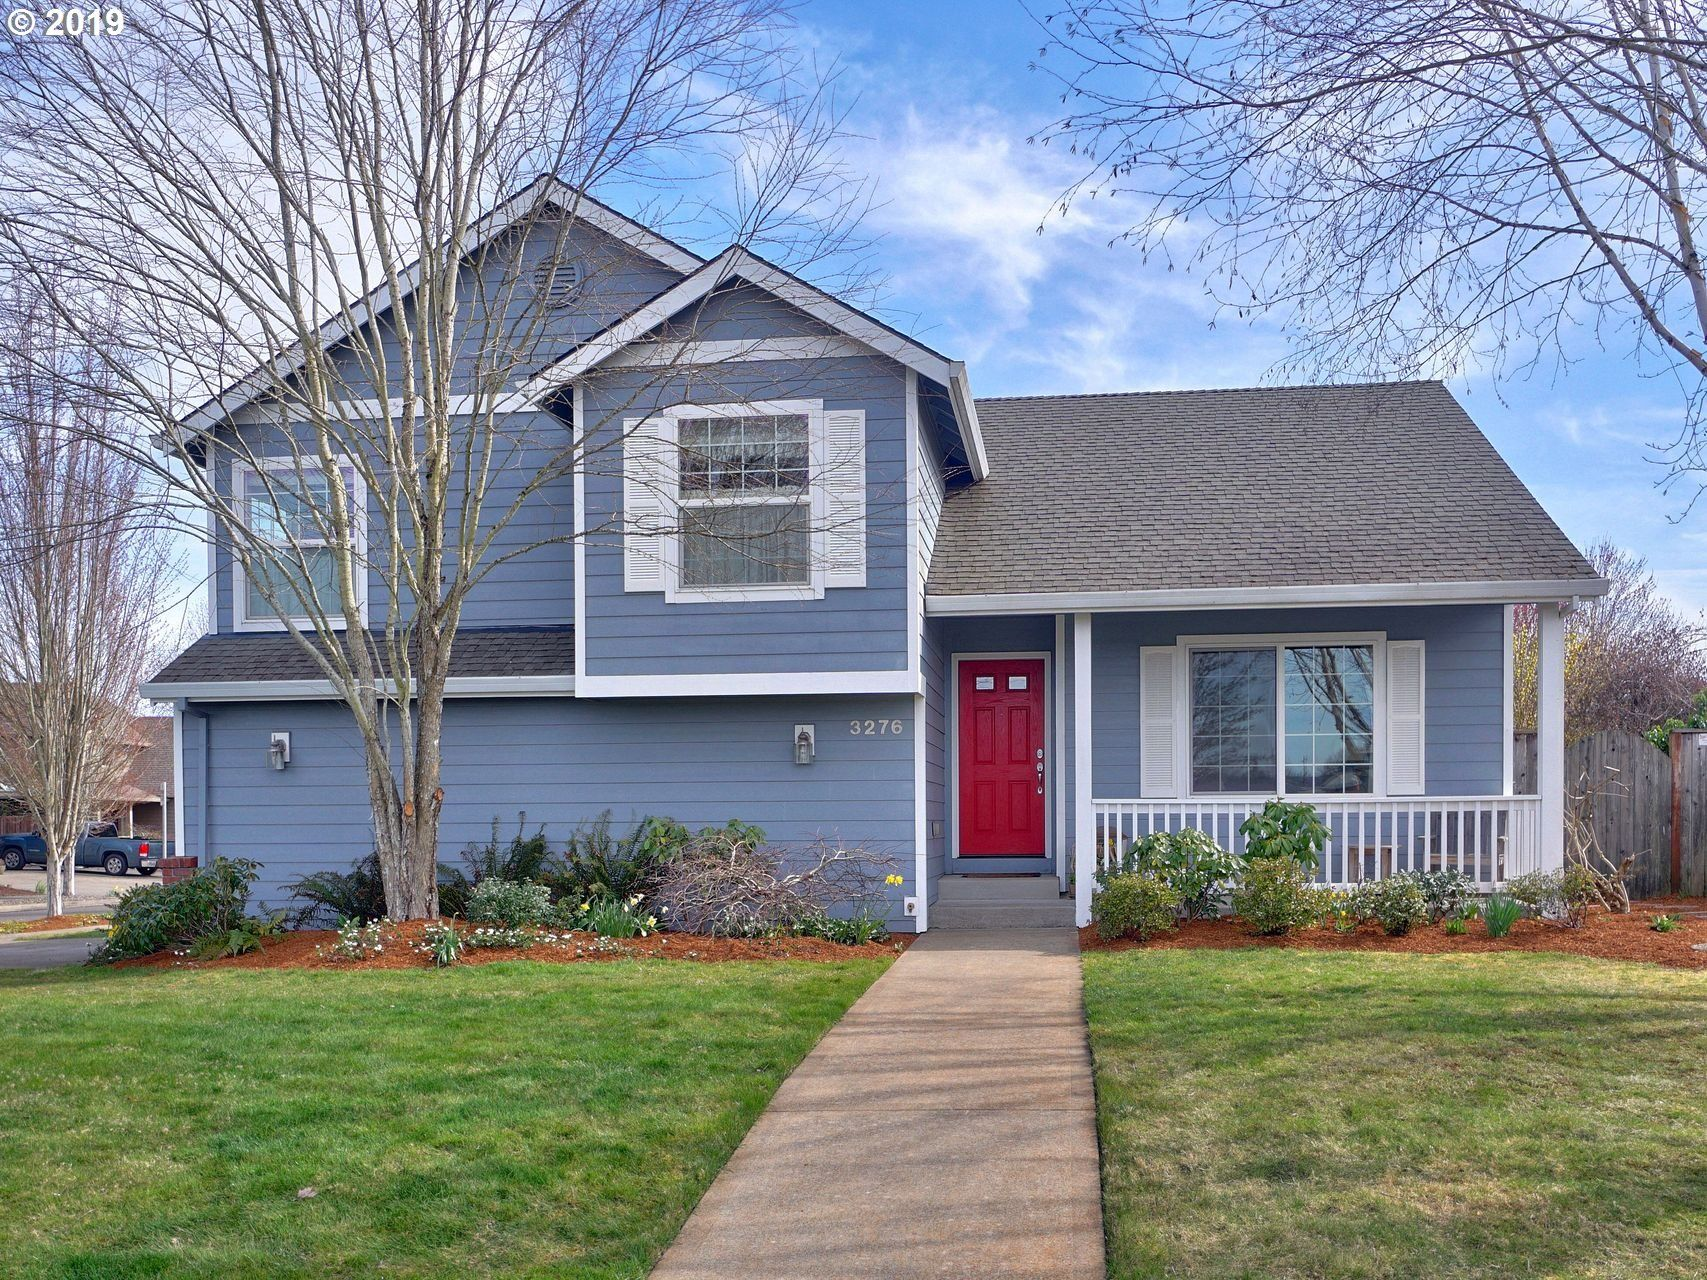 Surprising 3276 Ne Newby St Mcminnville Or 97128 3 Bed 3 Bath Single Family Home Mls 19176133 32 Photos Trulia Interior Design Ideas Clesiryabchikinfo